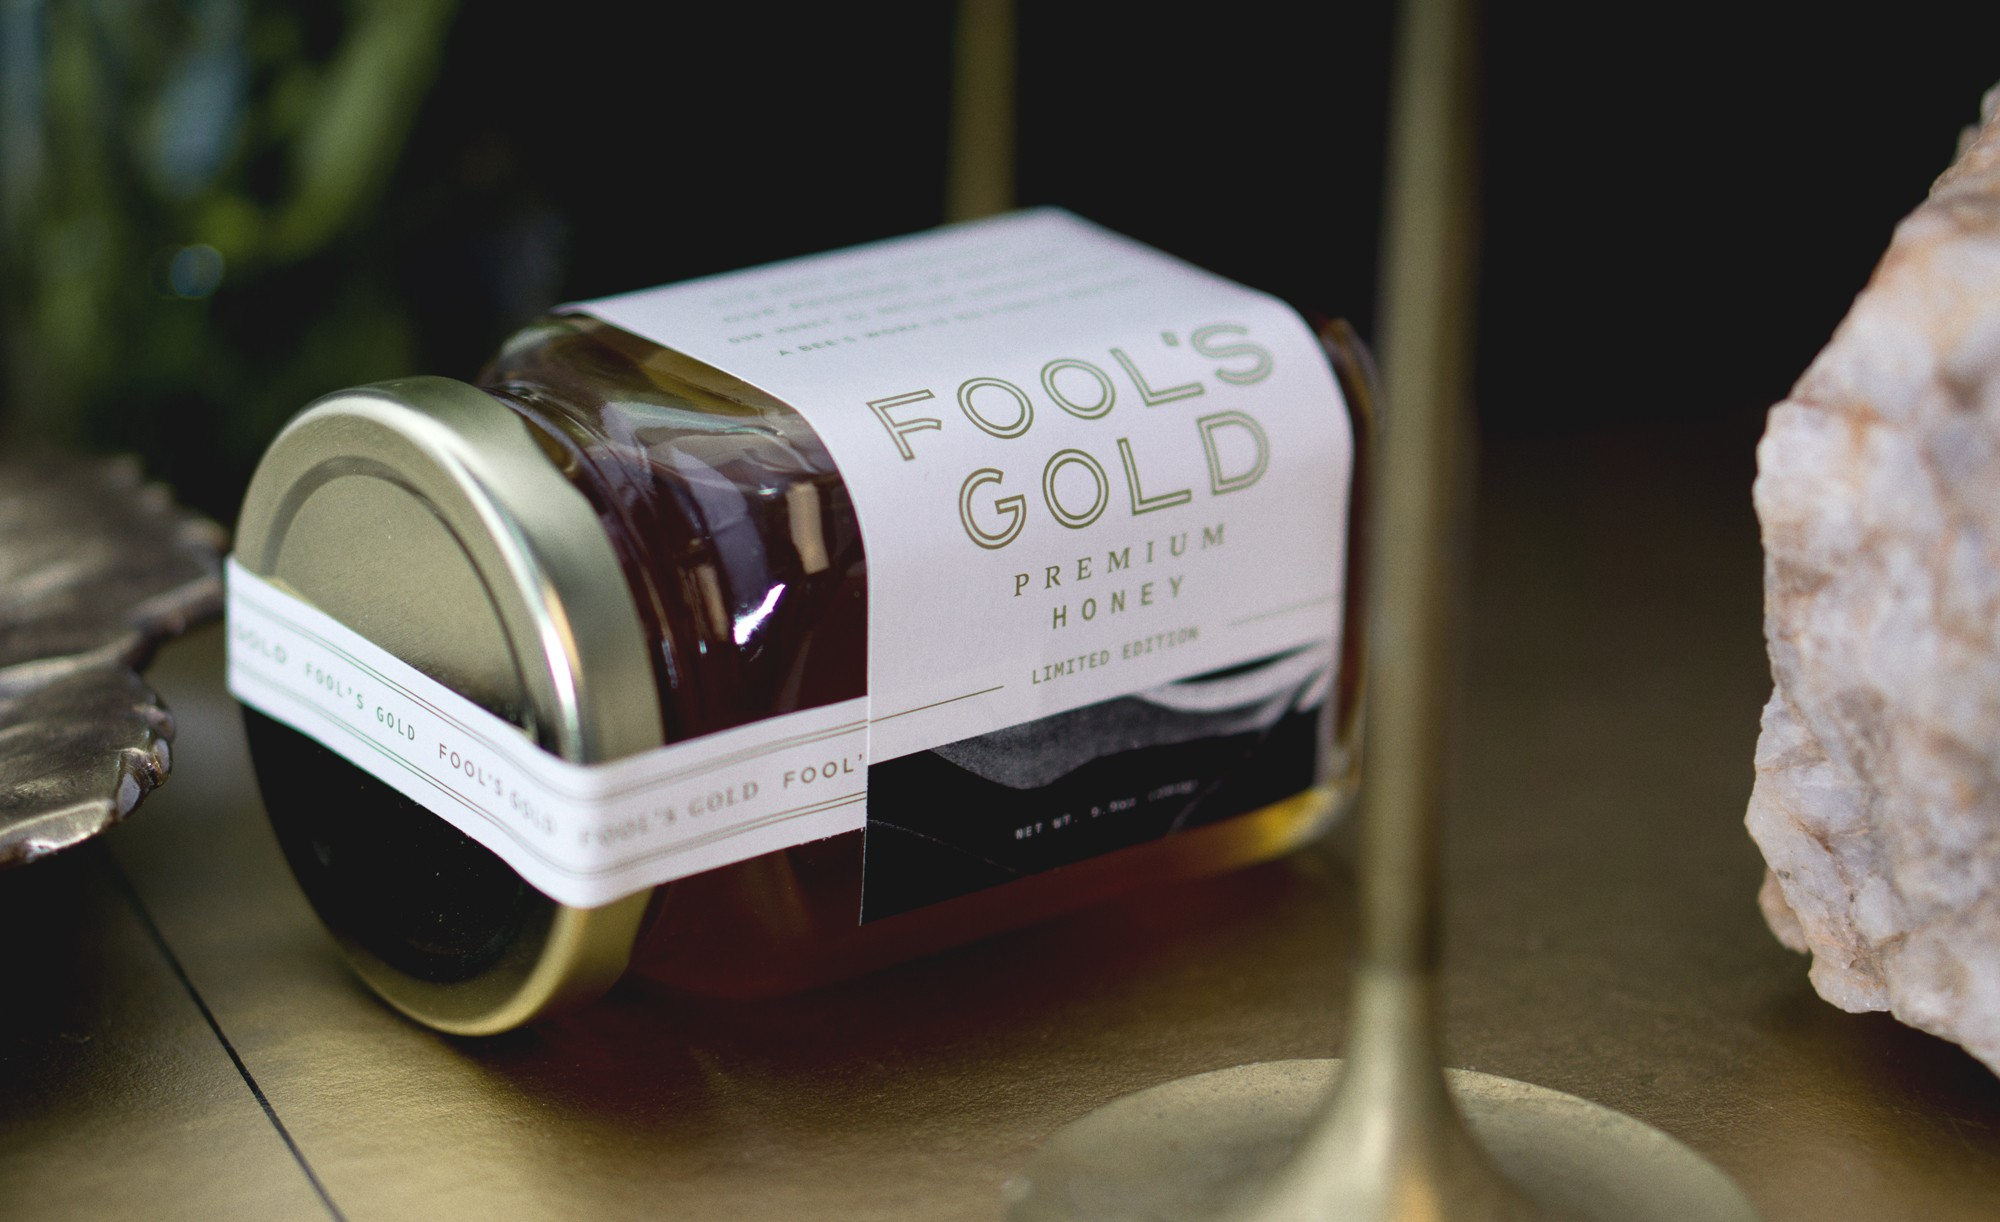 Branding and Packaging Design for Fool's Gold Honey